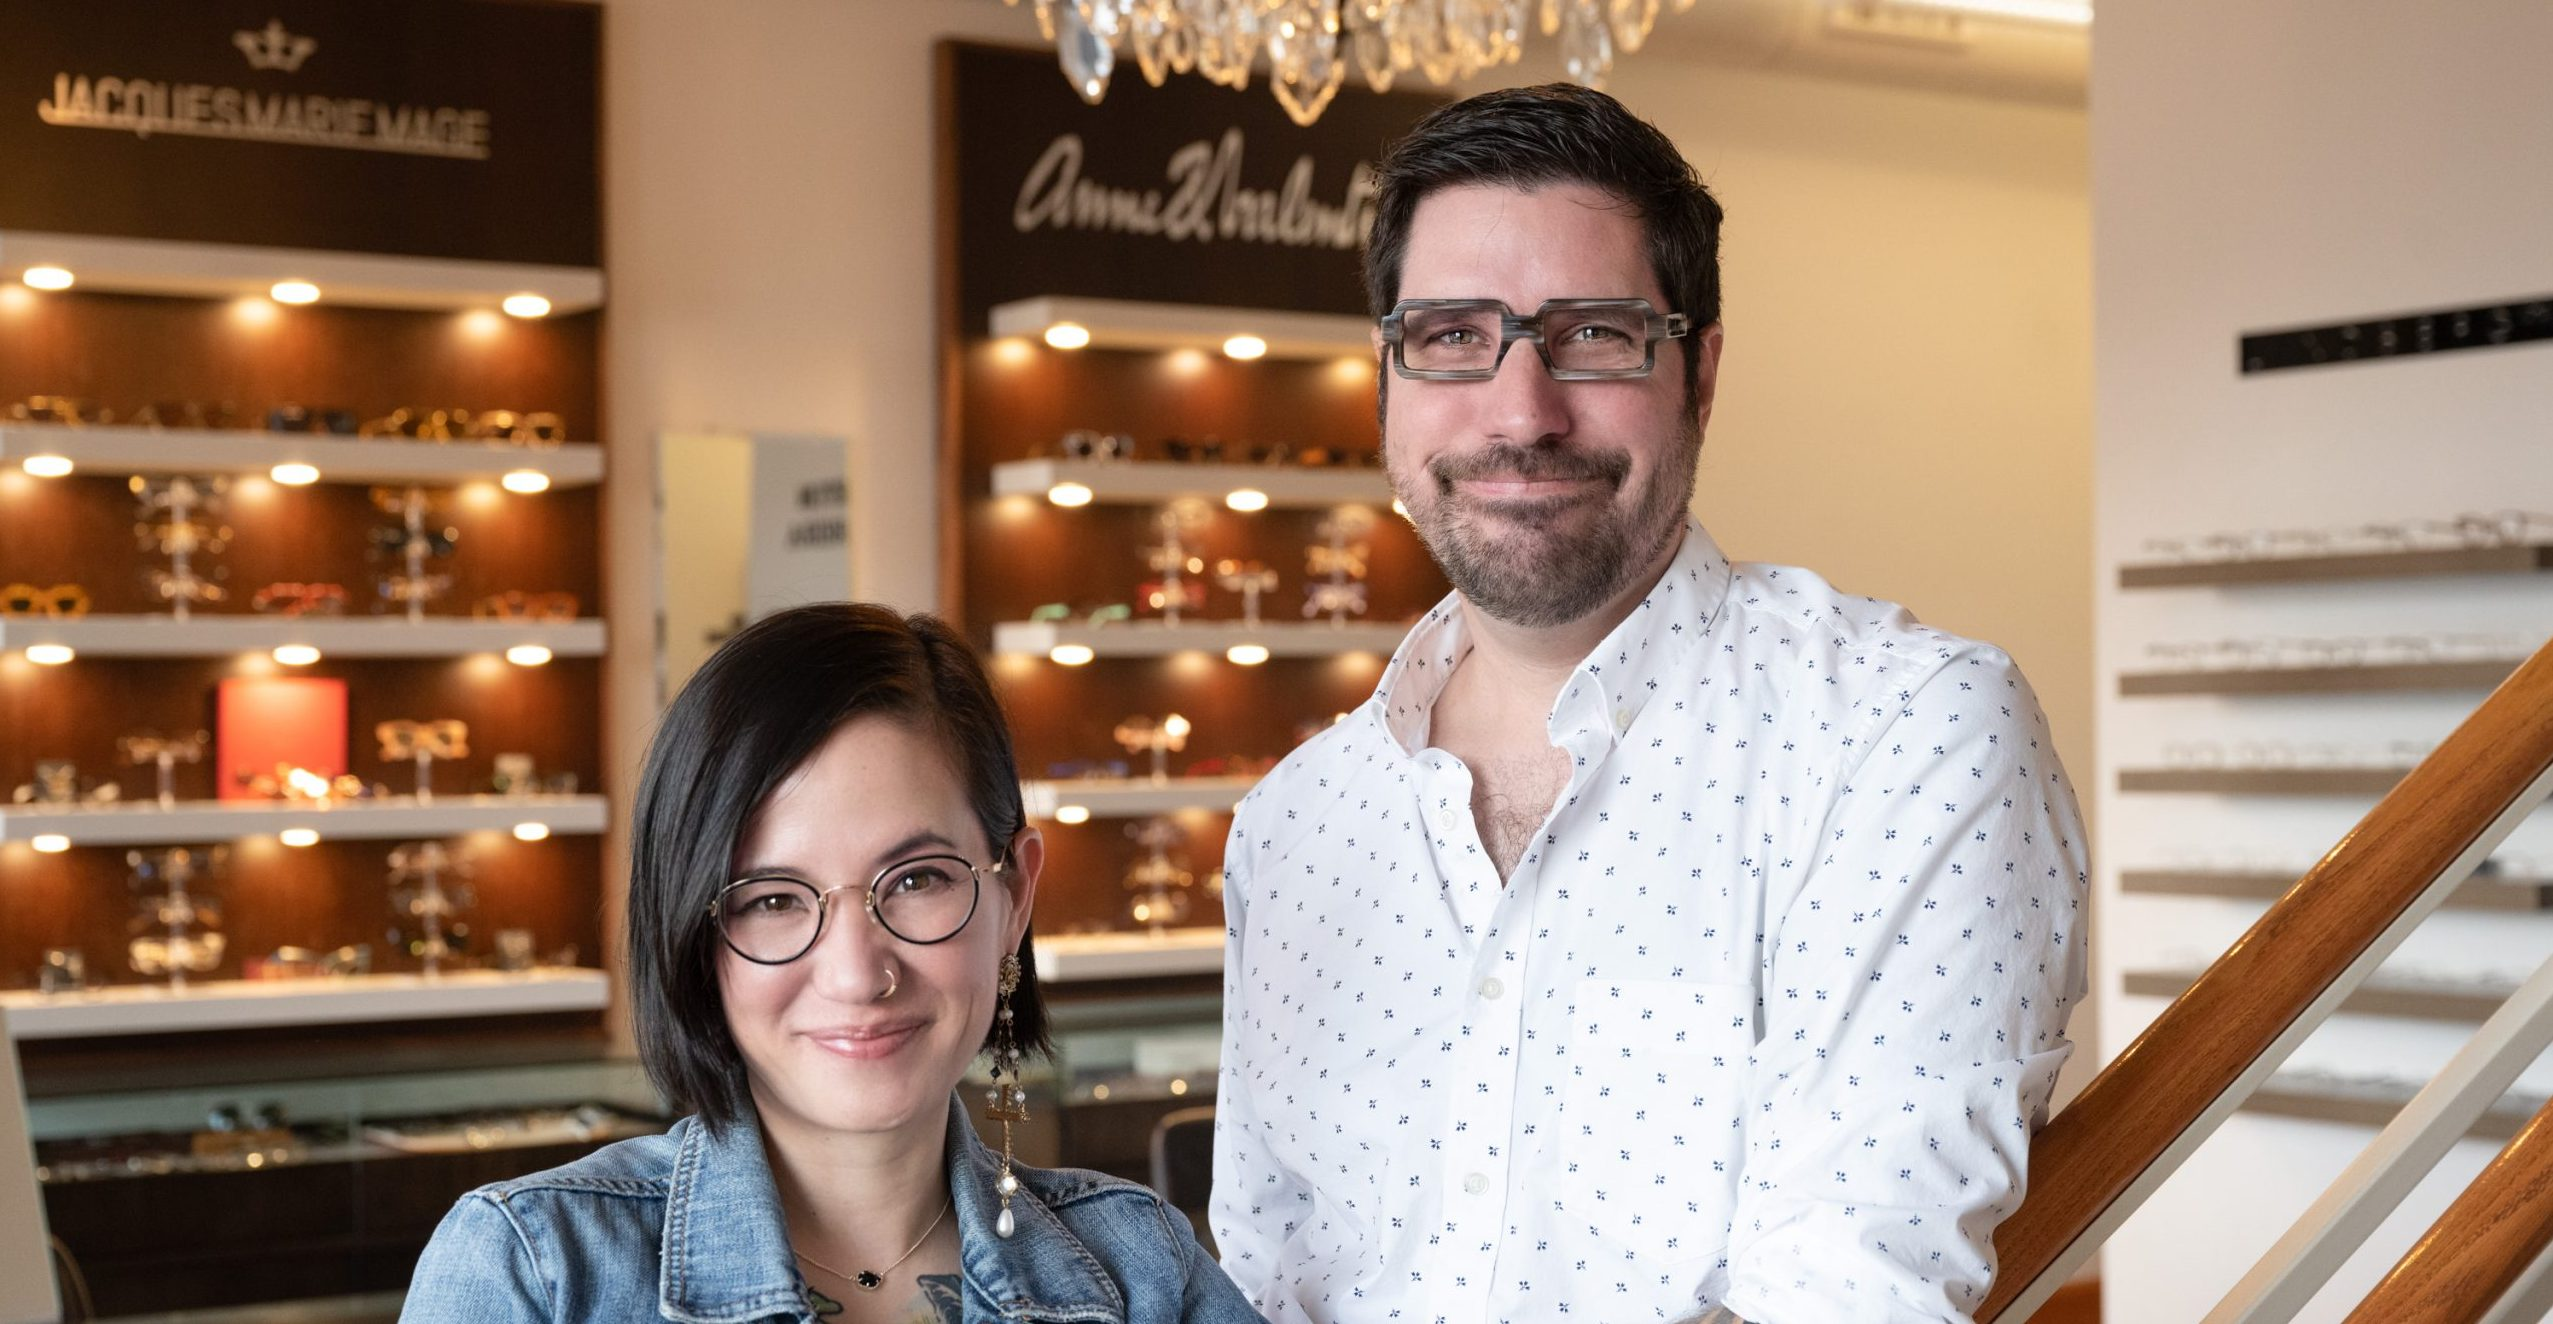 Dress Your Eyes With Distinctive and Handcrafted Eyewear